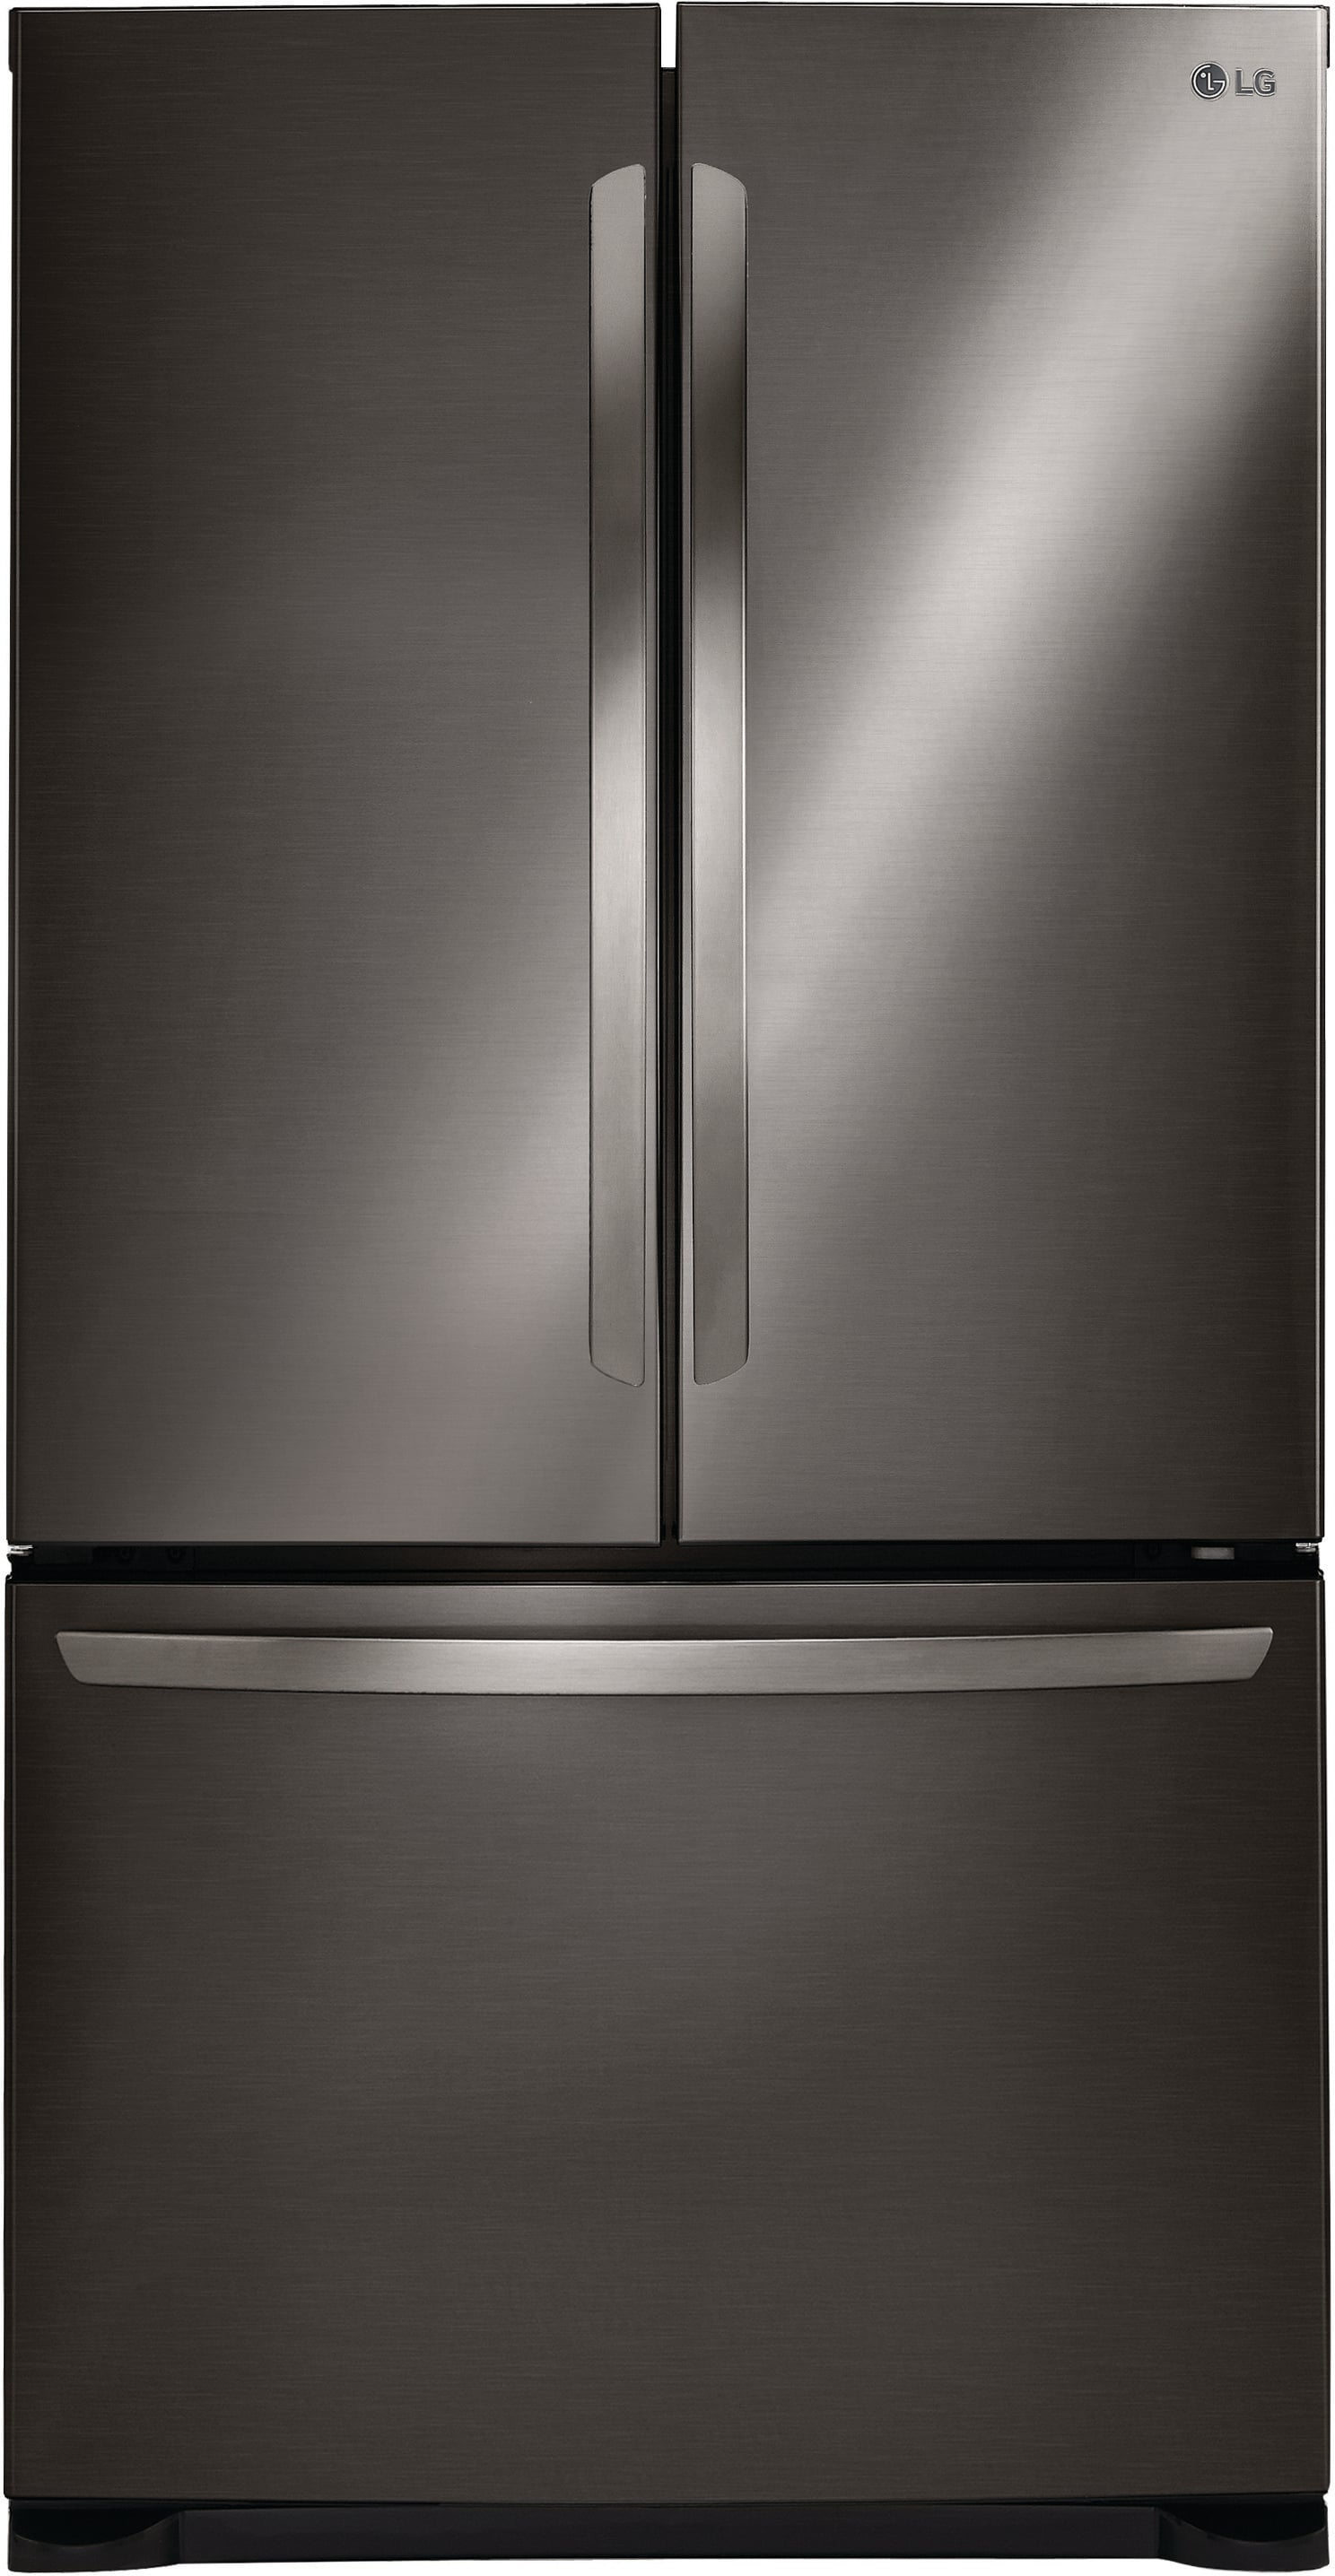 LG LFC21776D 36 Inch Counter Depth French Door Refrigerator With IcePlus™  Freezing, SmartDiagnosis™, SpillProtector™, Multi Air Flow, Linear  Compressor, ...